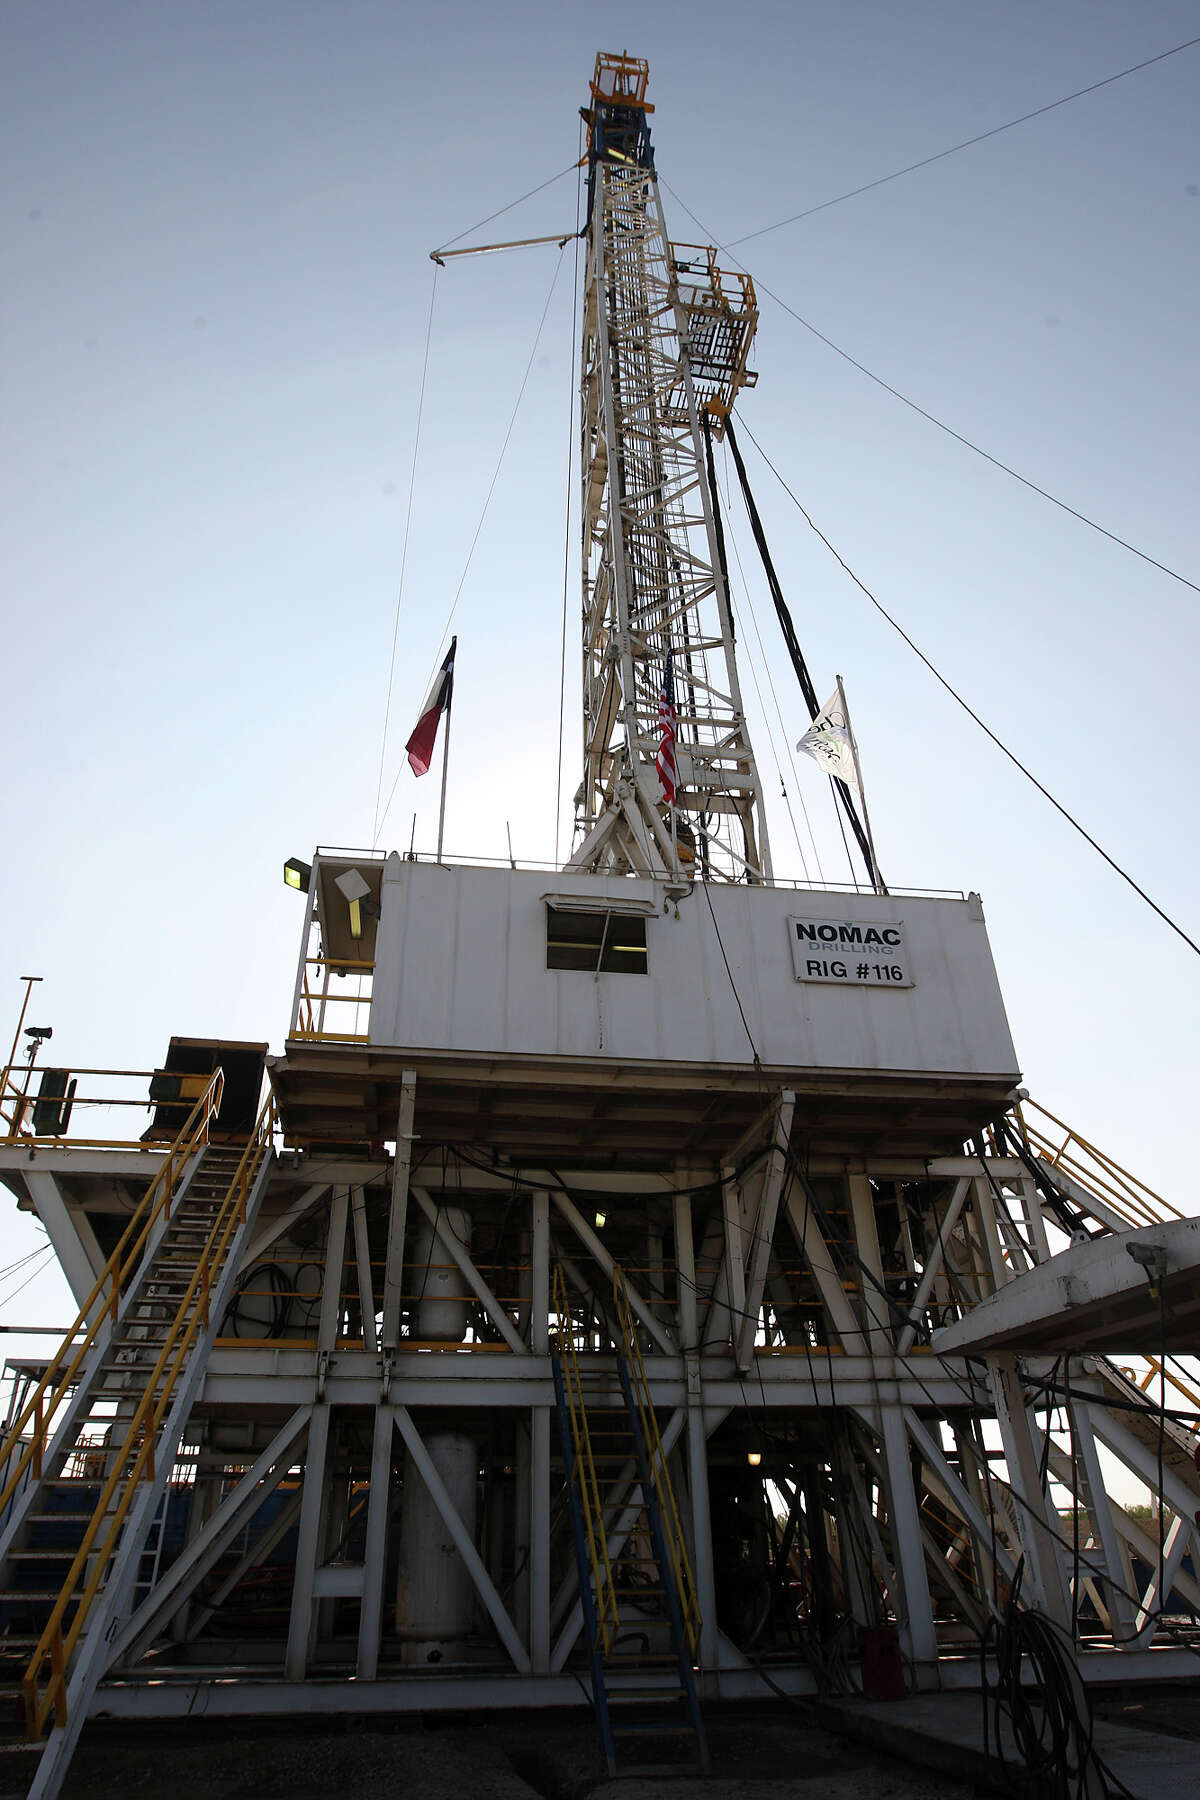 File photo of a Chesapeake Energy well by Carriso Springs. The company is seeking a $1 billion loan as the company battered by cratering fuel prices and credit downgrades takes a step to address its $9 billion debt load.